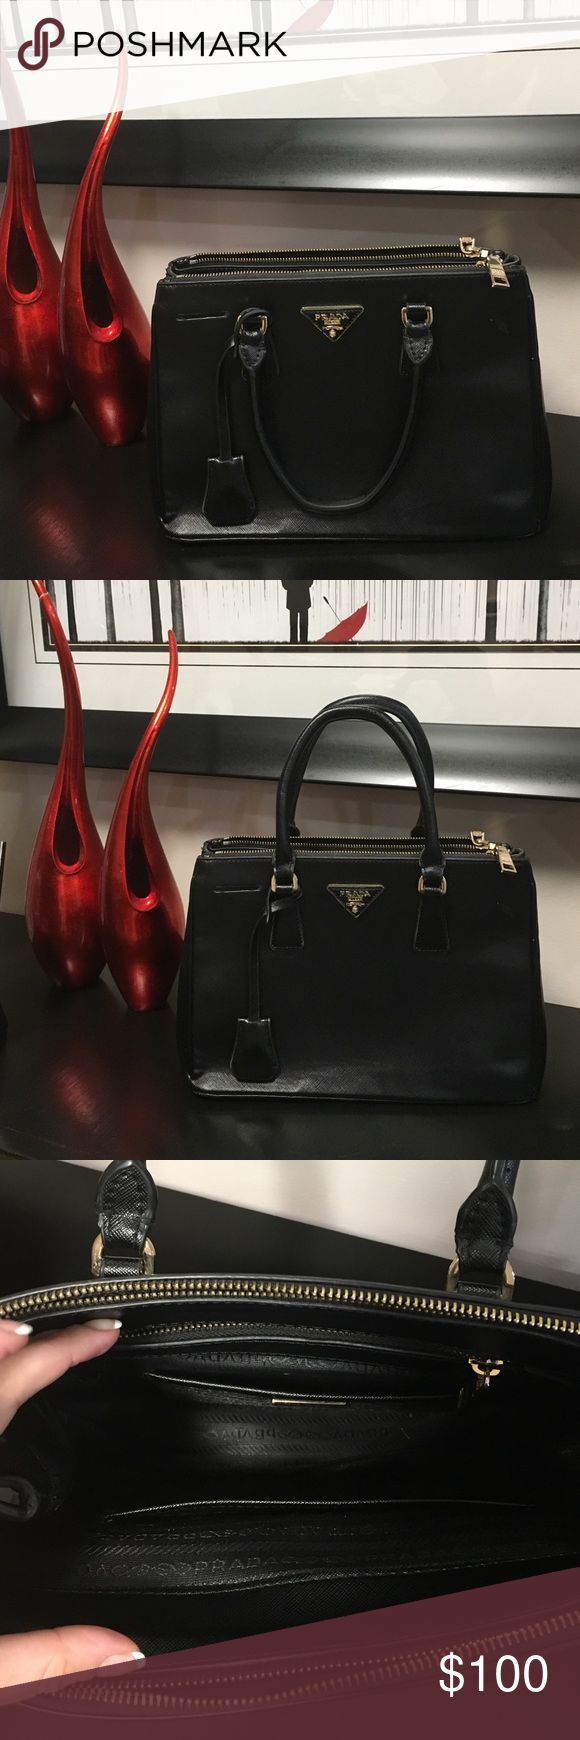 Black Prada Purse Black Purse in good condition. Medium size. Price reflects authenticity. Feel free to ask questions. Prada Bags Totes